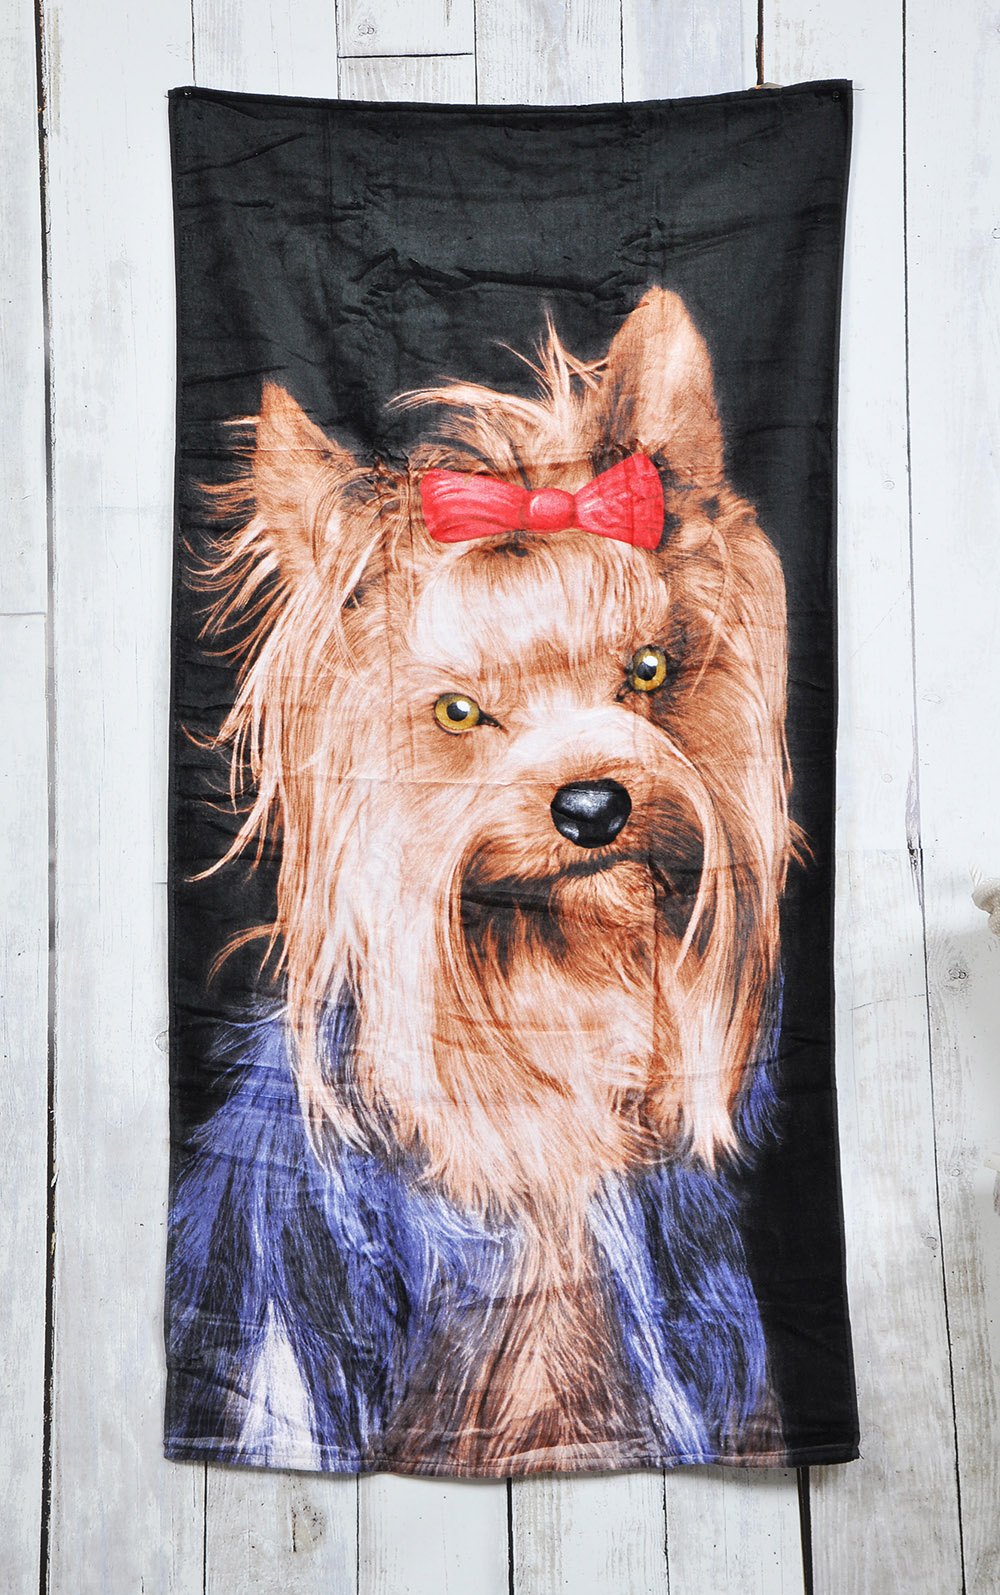 Lightweight 100% Cotton Beach Bath Towel - Yorkshire Terrier Design